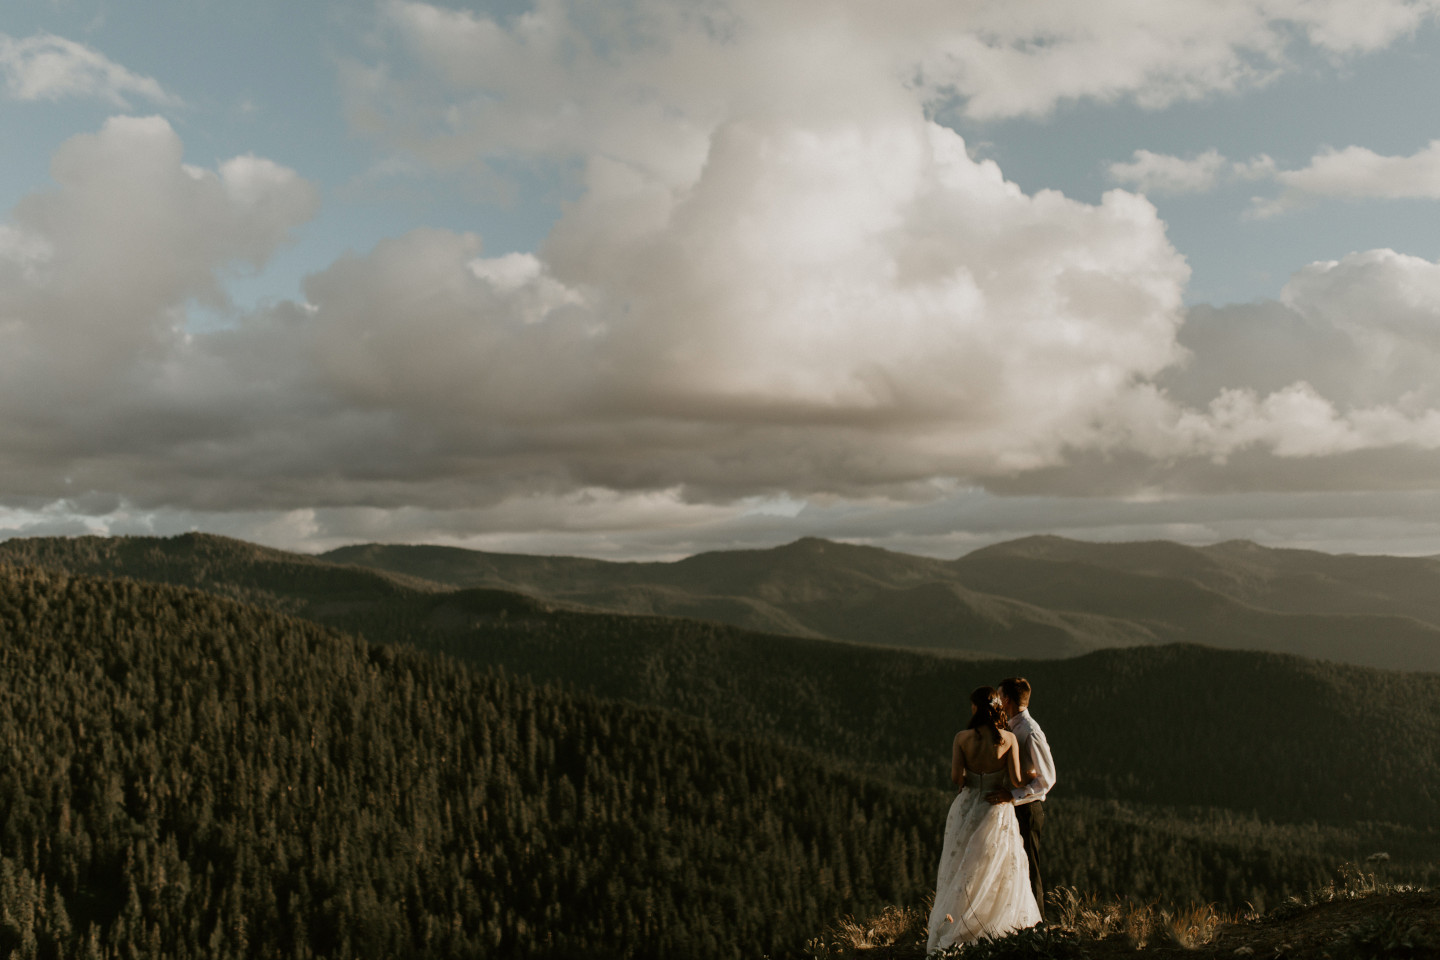 Ryan and Moira enjoy the view at Mount Hood. Adventure elopement wedding shoot by Sienna Plus Josh.